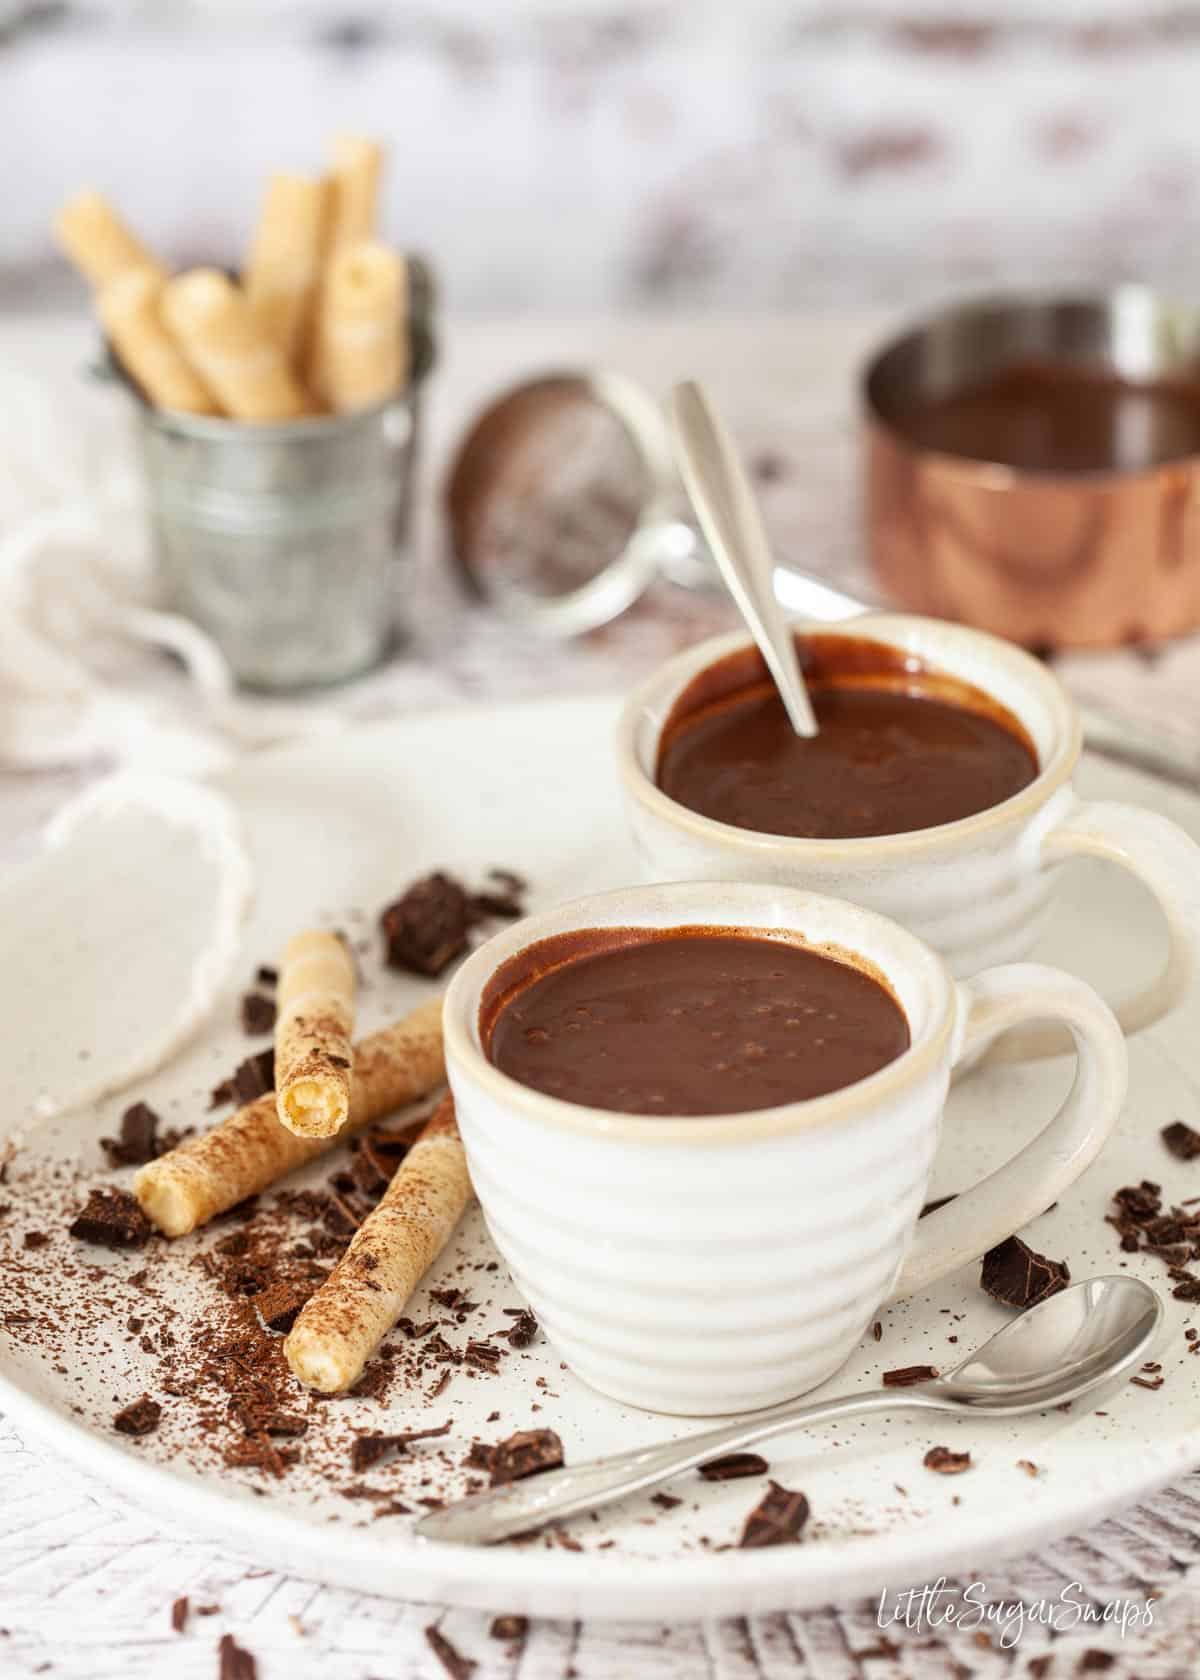 Cups of thick Italian hot chocolate served with wafers for dipping